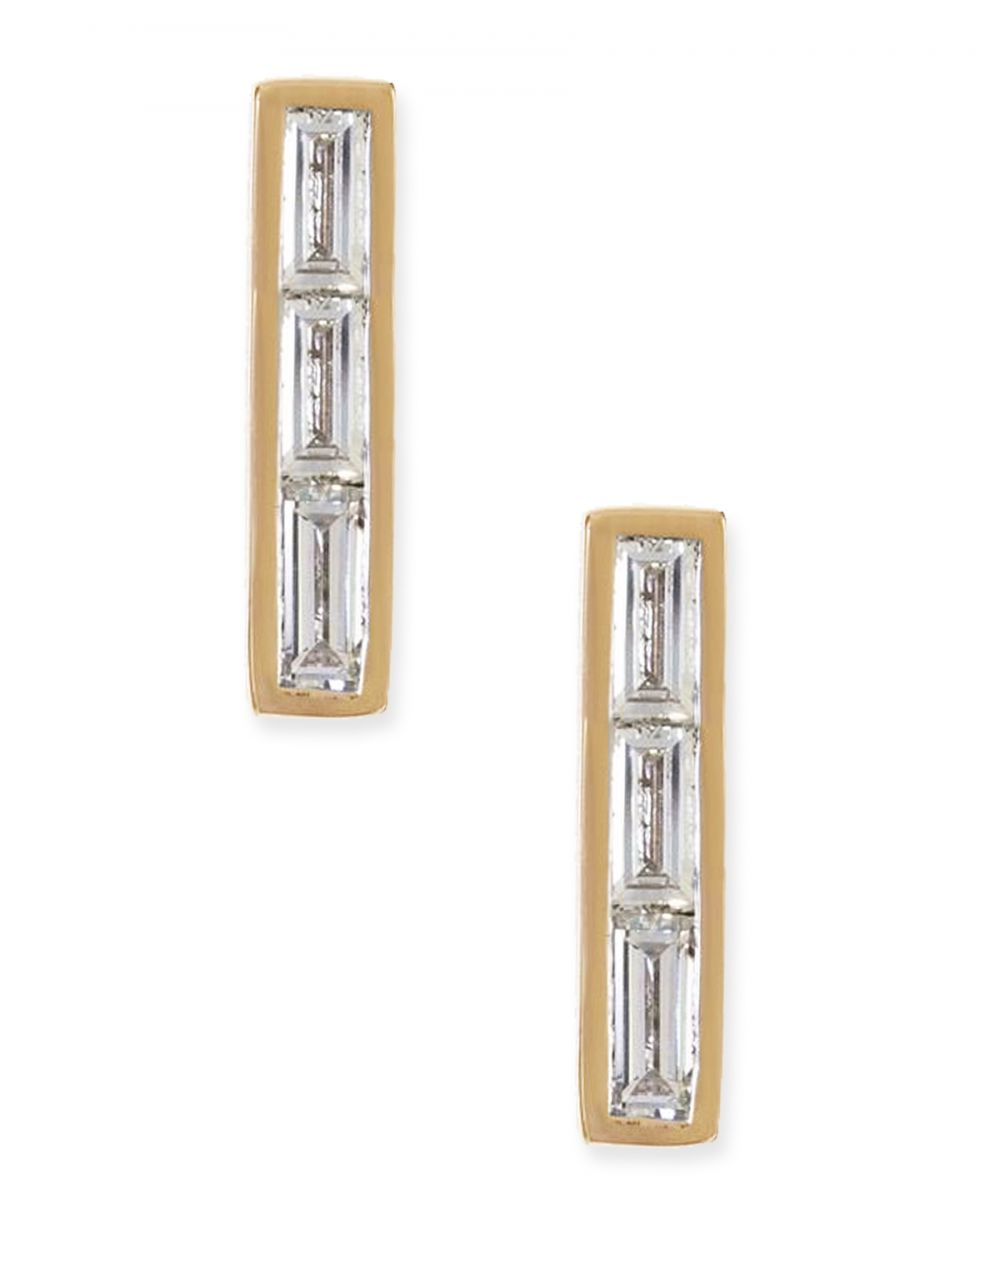 Three Baguette Stud<br /><i><small>14K Yellow Gold with White Diamonds</small></i><br />